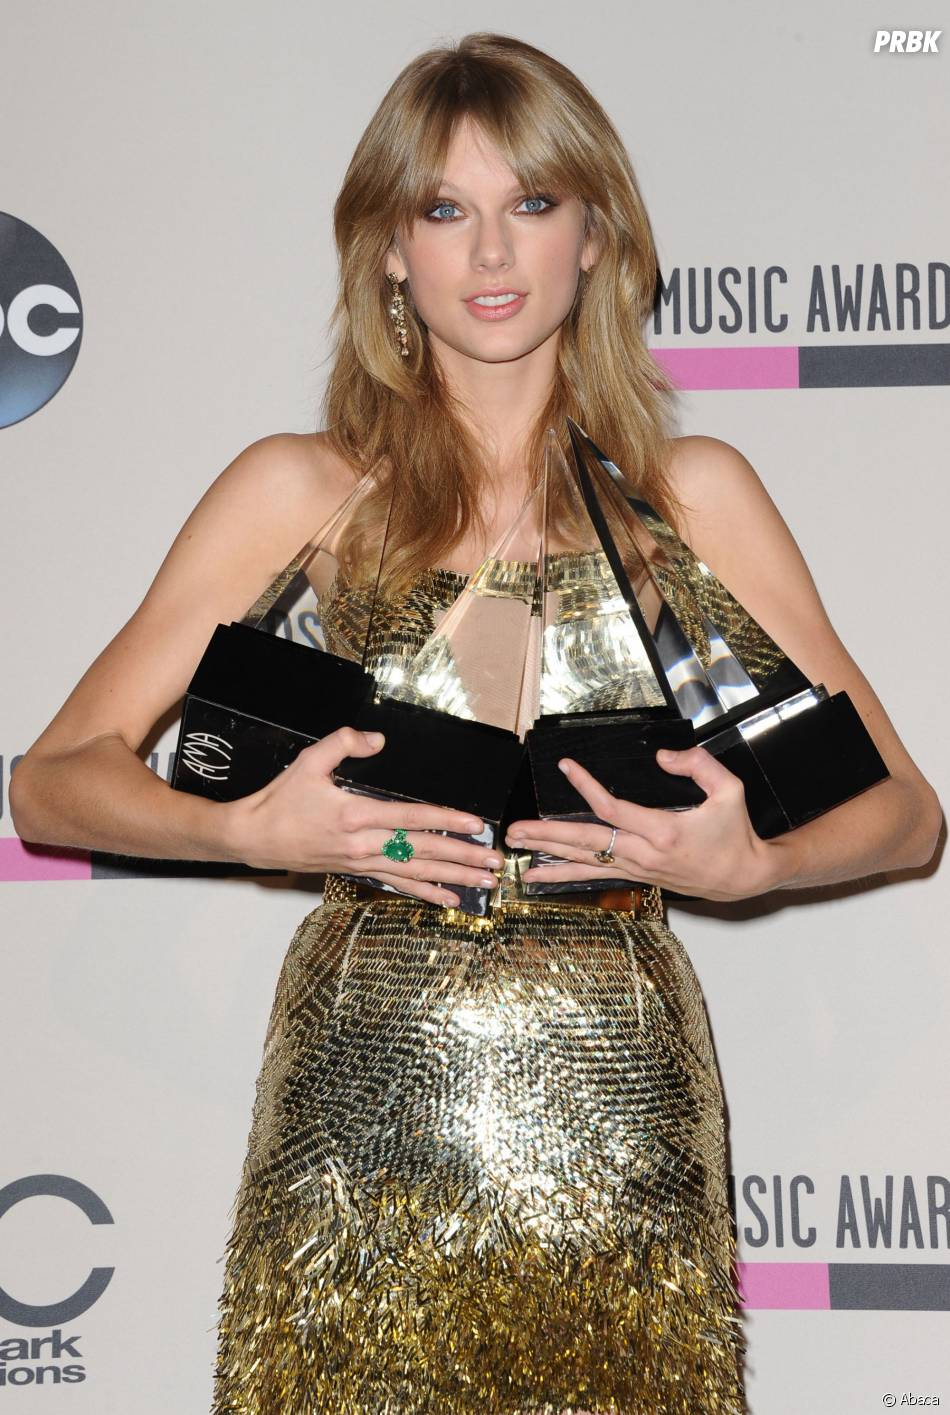 American Music Awards 2013 : Taylor Swift grande gagnante